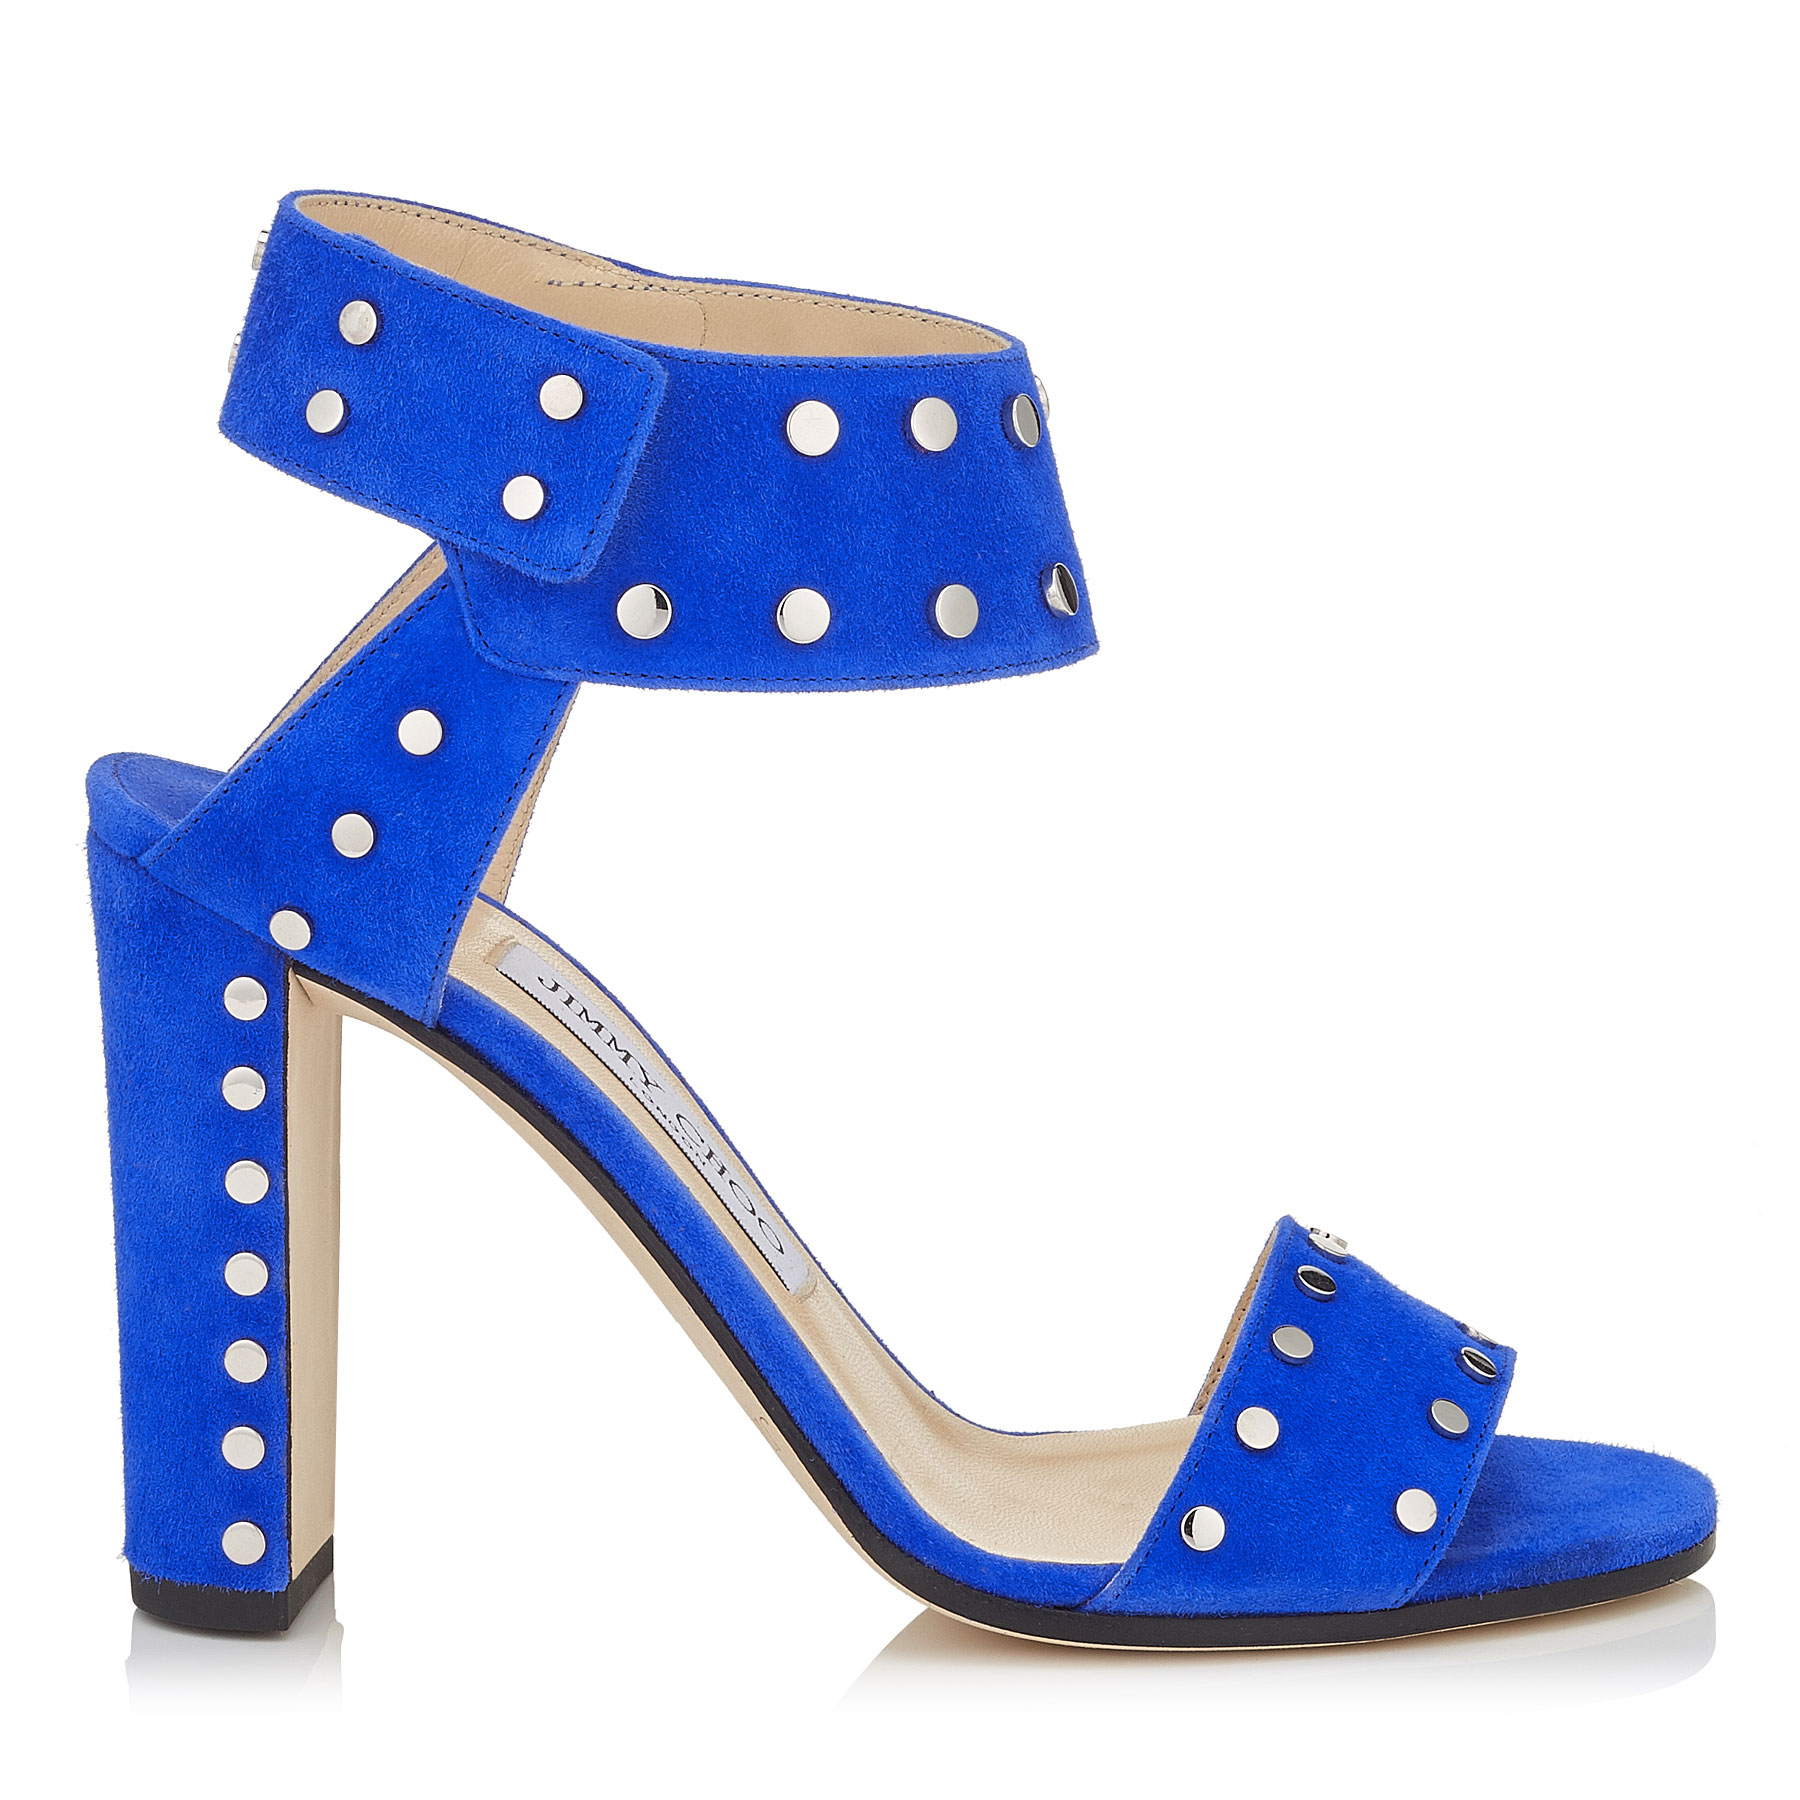 VETO 100 Cobalt Suede Sandals with Silver Studs